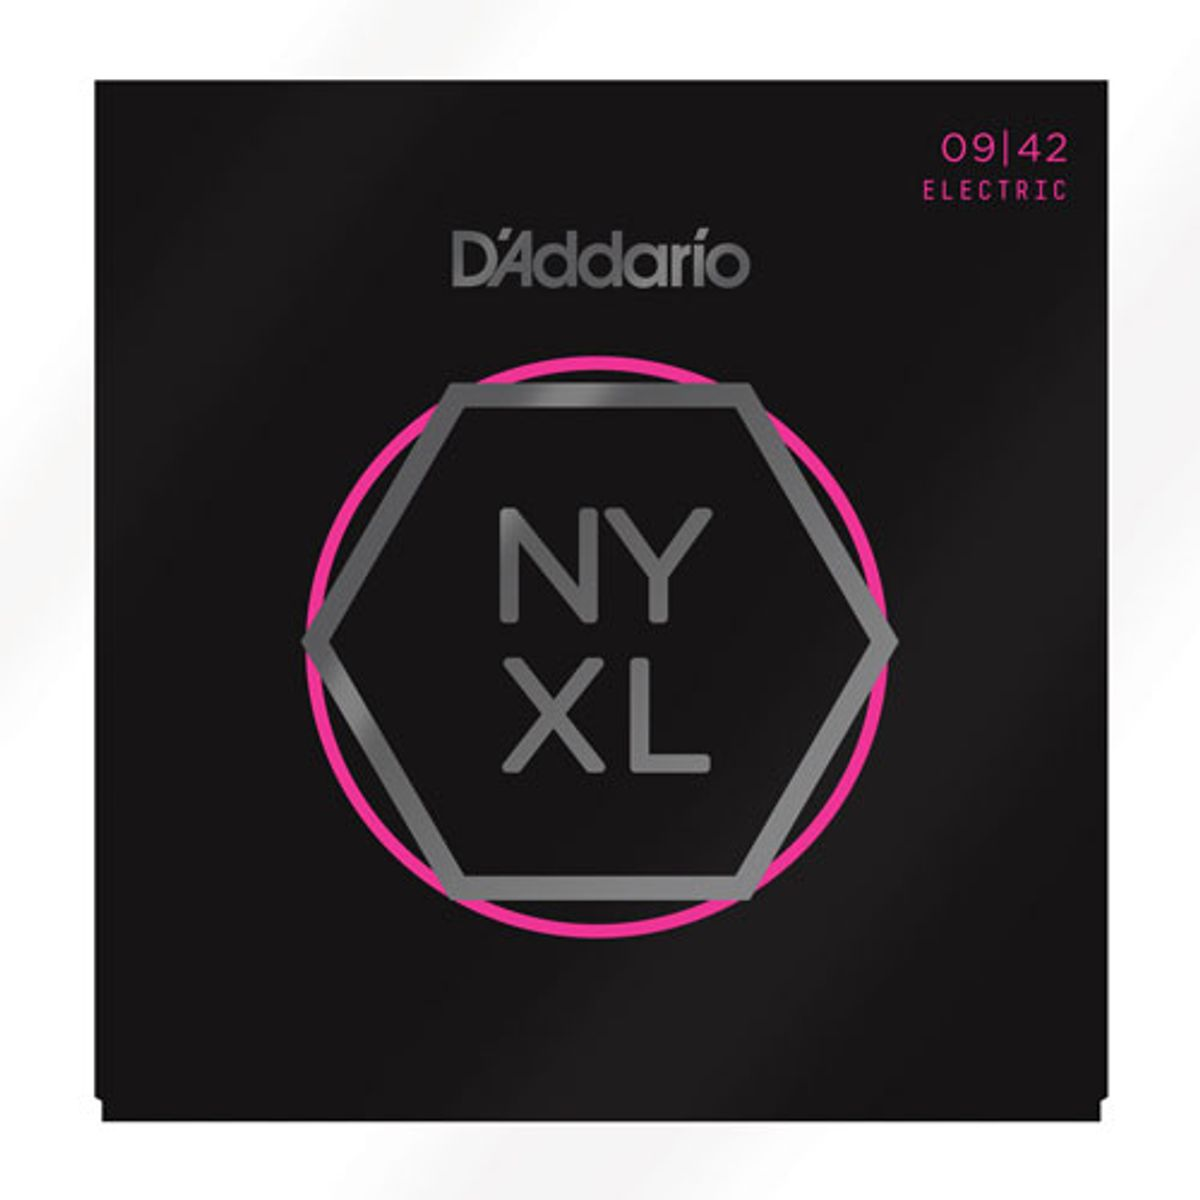 D'Addario Releases NYXL Line of Strings